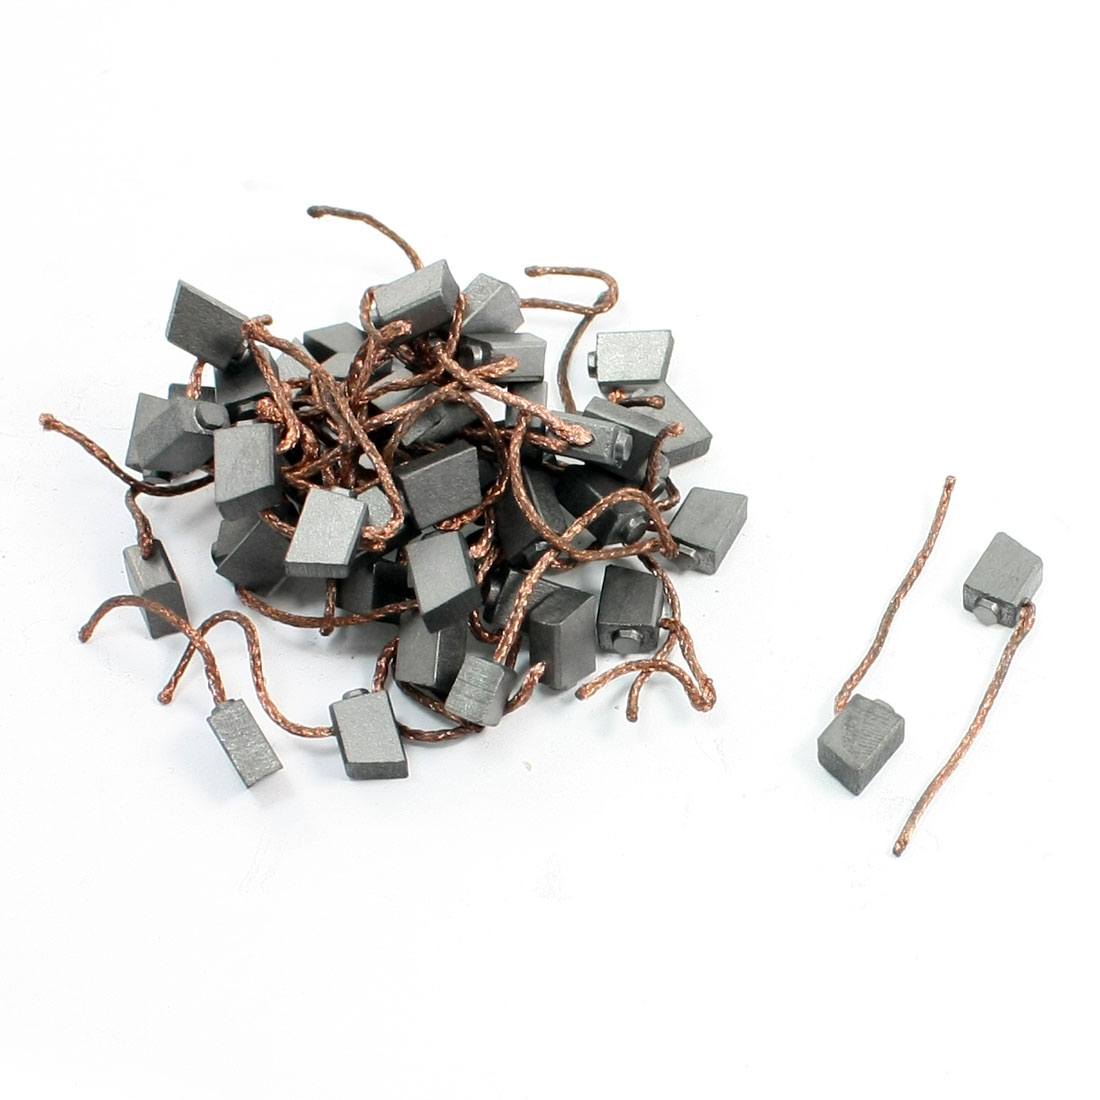 50 Pcs 4.5 x 6.5 x 9mm Copper Motor Carbon Brushes Replacement Parts